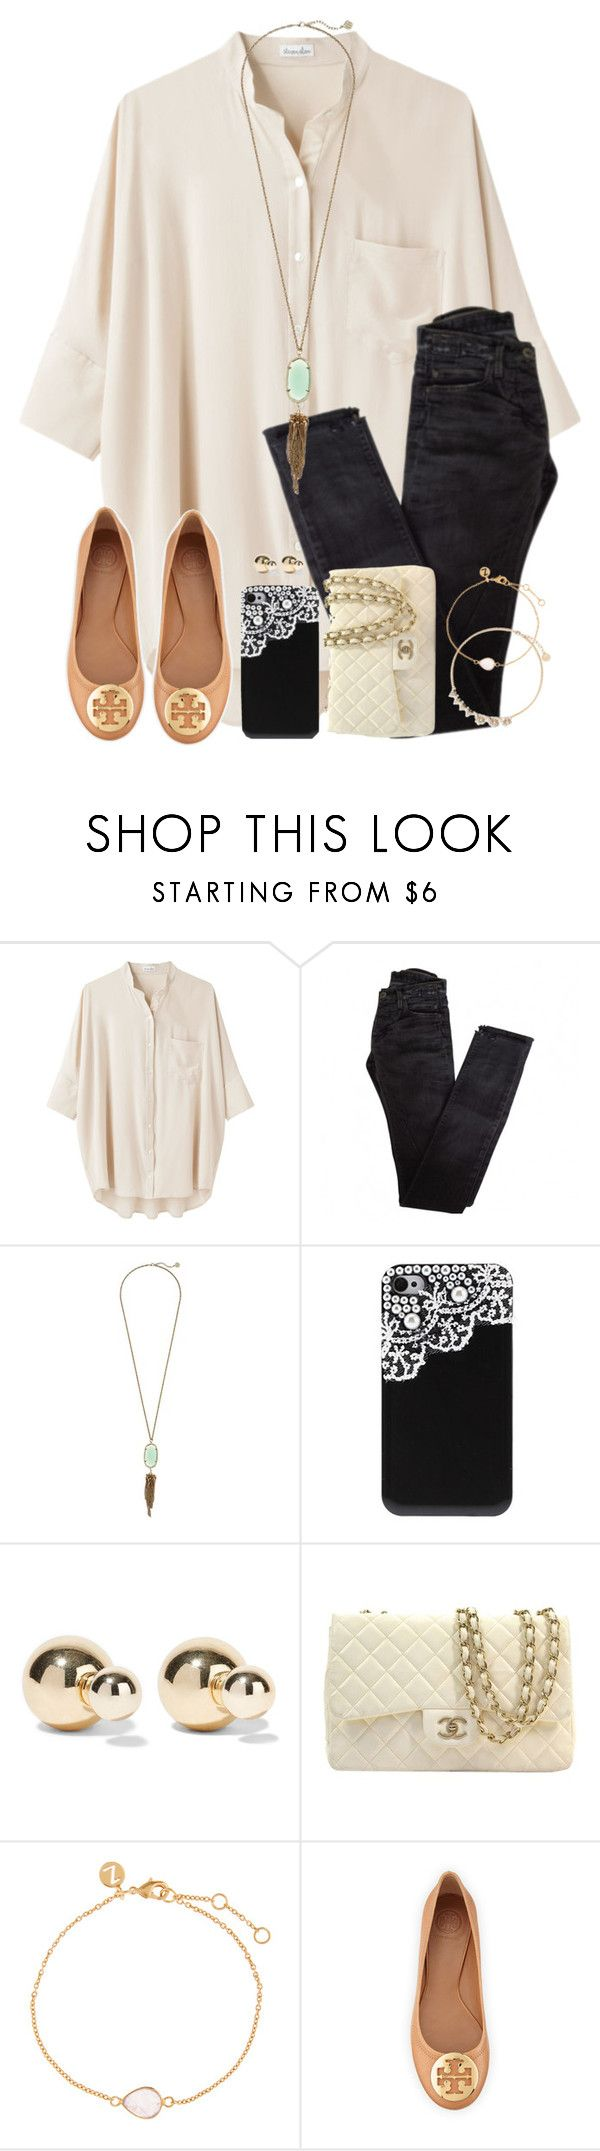 """No School Again Today, But Then There's Tomorrow...😒😕"" by twaayy ❤ liked on Polyvore featuring Steven Alan, Rick Owens, Kendra Scott, Kenneth Jay Lane, Chanel, Accessorize, Tory Burch and Anton Heunis"